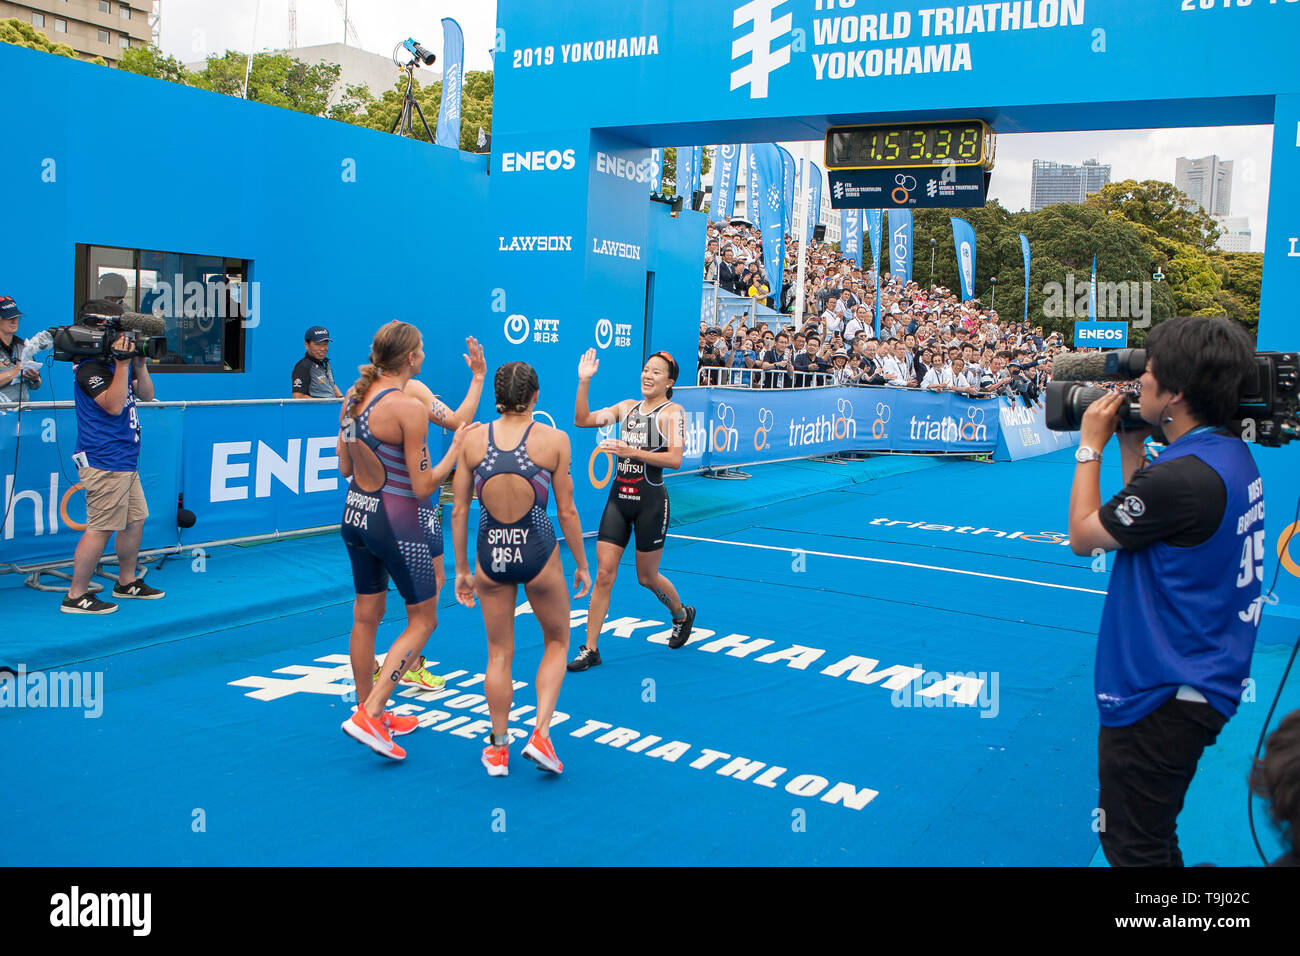 Yokohama, Japan. 18th May, 2019. 2019 ITU World Triathlon, World Paratriathlon Yokohama at Yamashita Park and Minato Mirai, Yokohama. Rappaport, Spivey, Takashashi (Photos by Michael Steinebach/AFLO) Credit: Aflo Co. Ltd./Alamy Live News Stock Photo